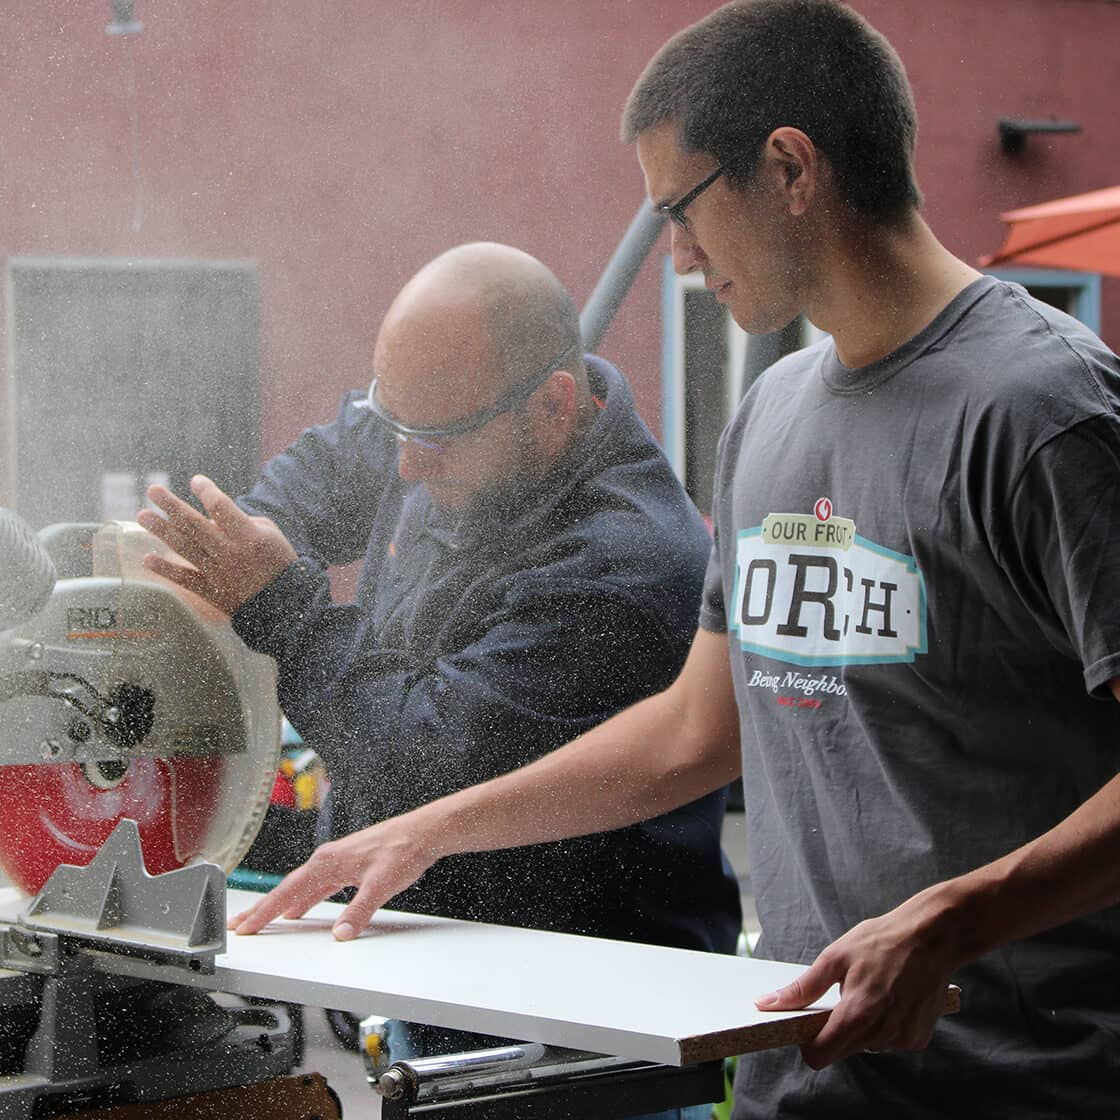 Two men cutting a piece of wood while wearing safety goggles